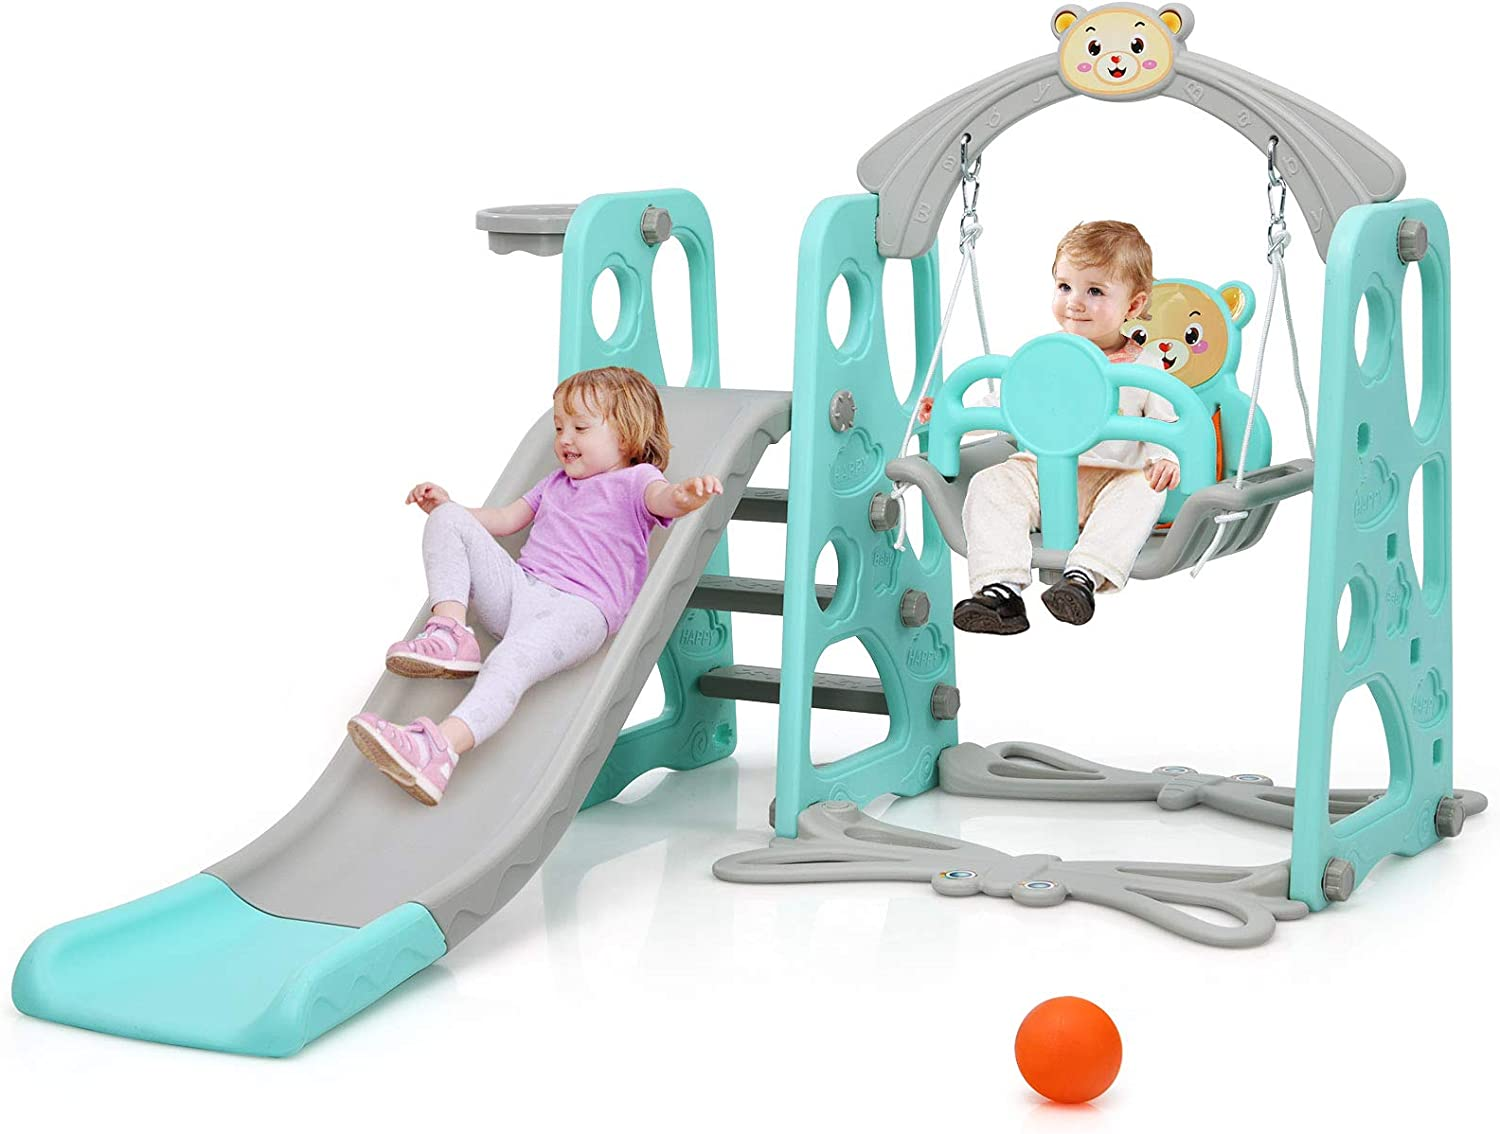 Costzon 4 in 1 Recommendation Toddler Climber Set Play discount Swing Kids and